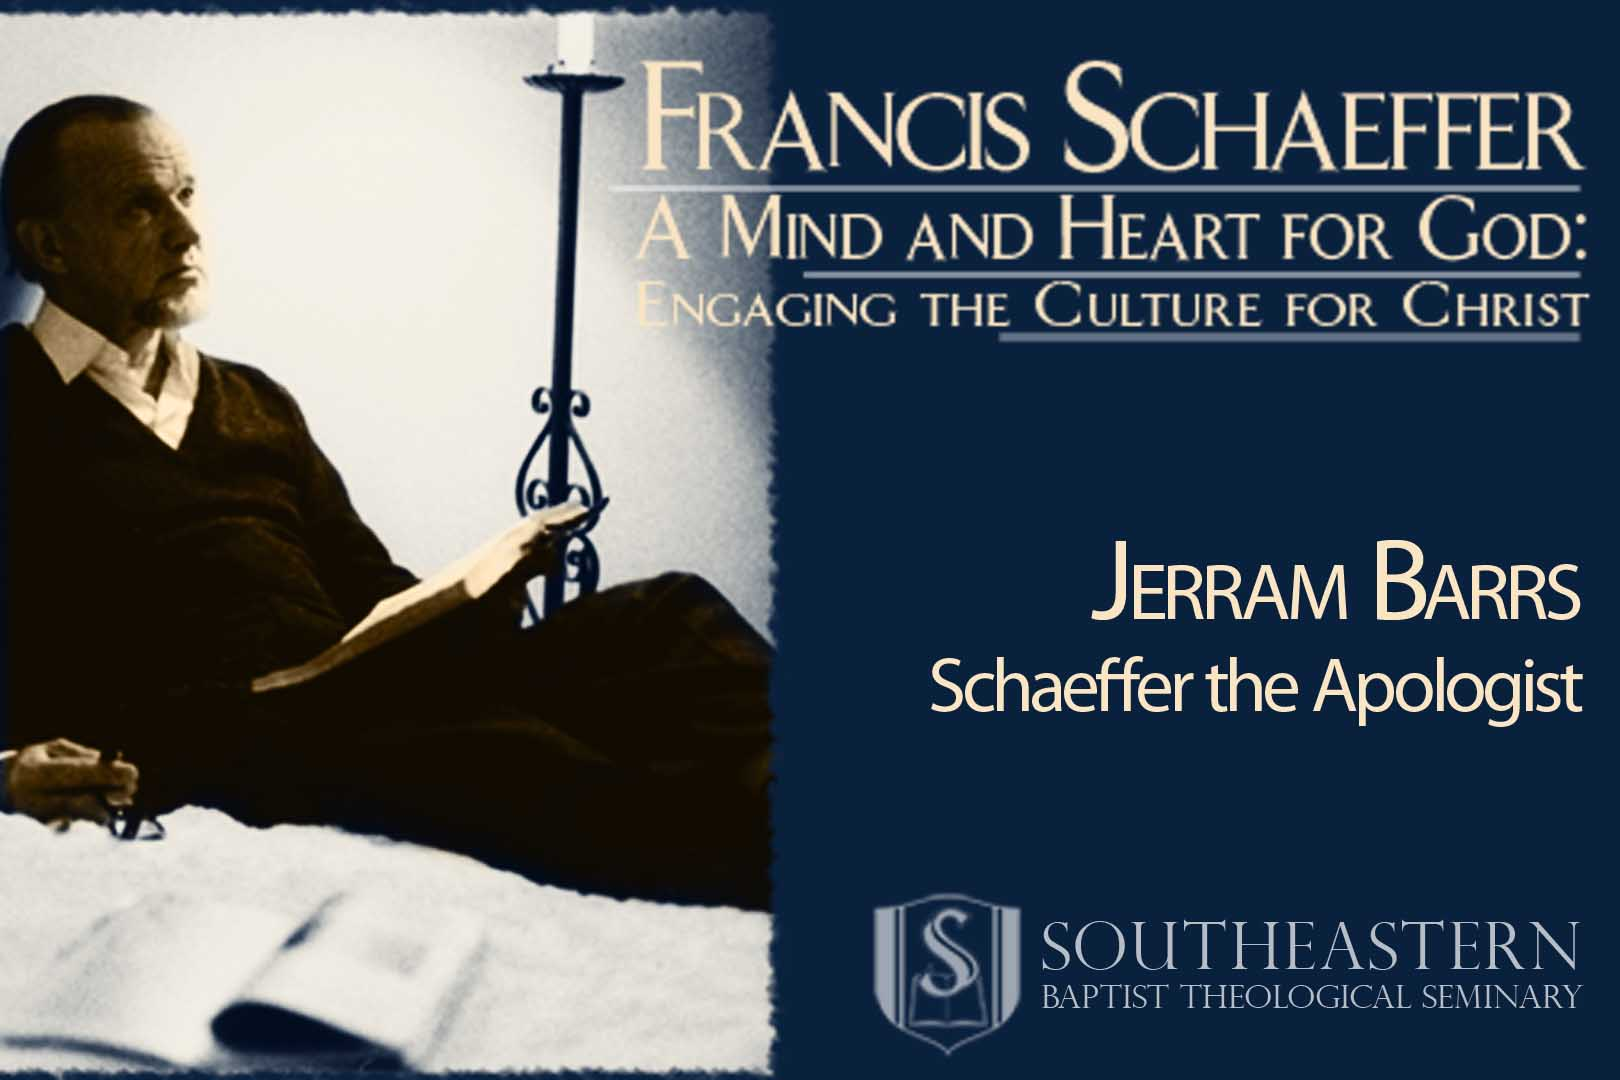 Jerram Barrs – Schaeffer the Apologist